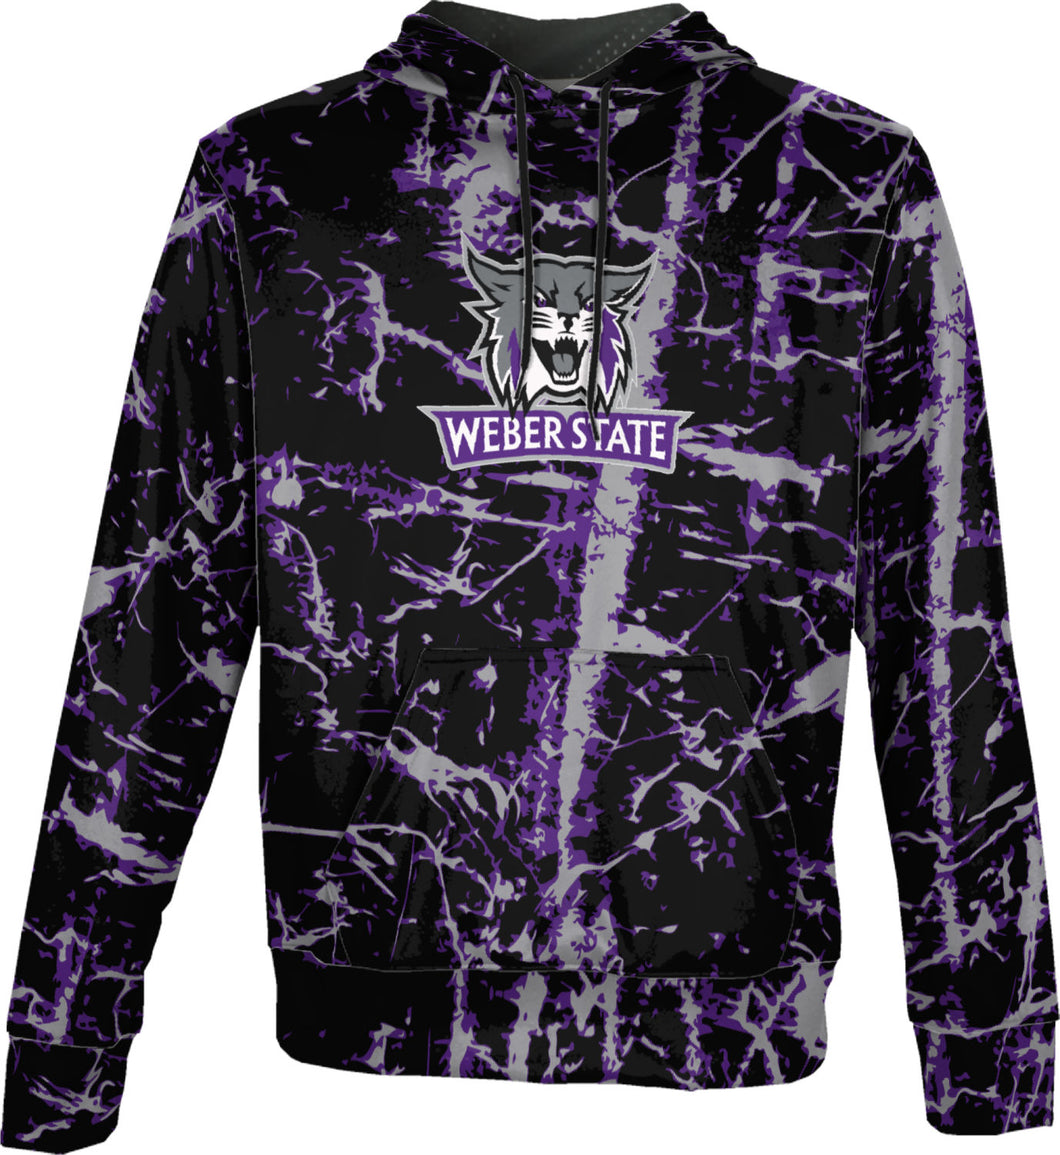 Weber State University: Boys' Pullover Hoodie - Distressed